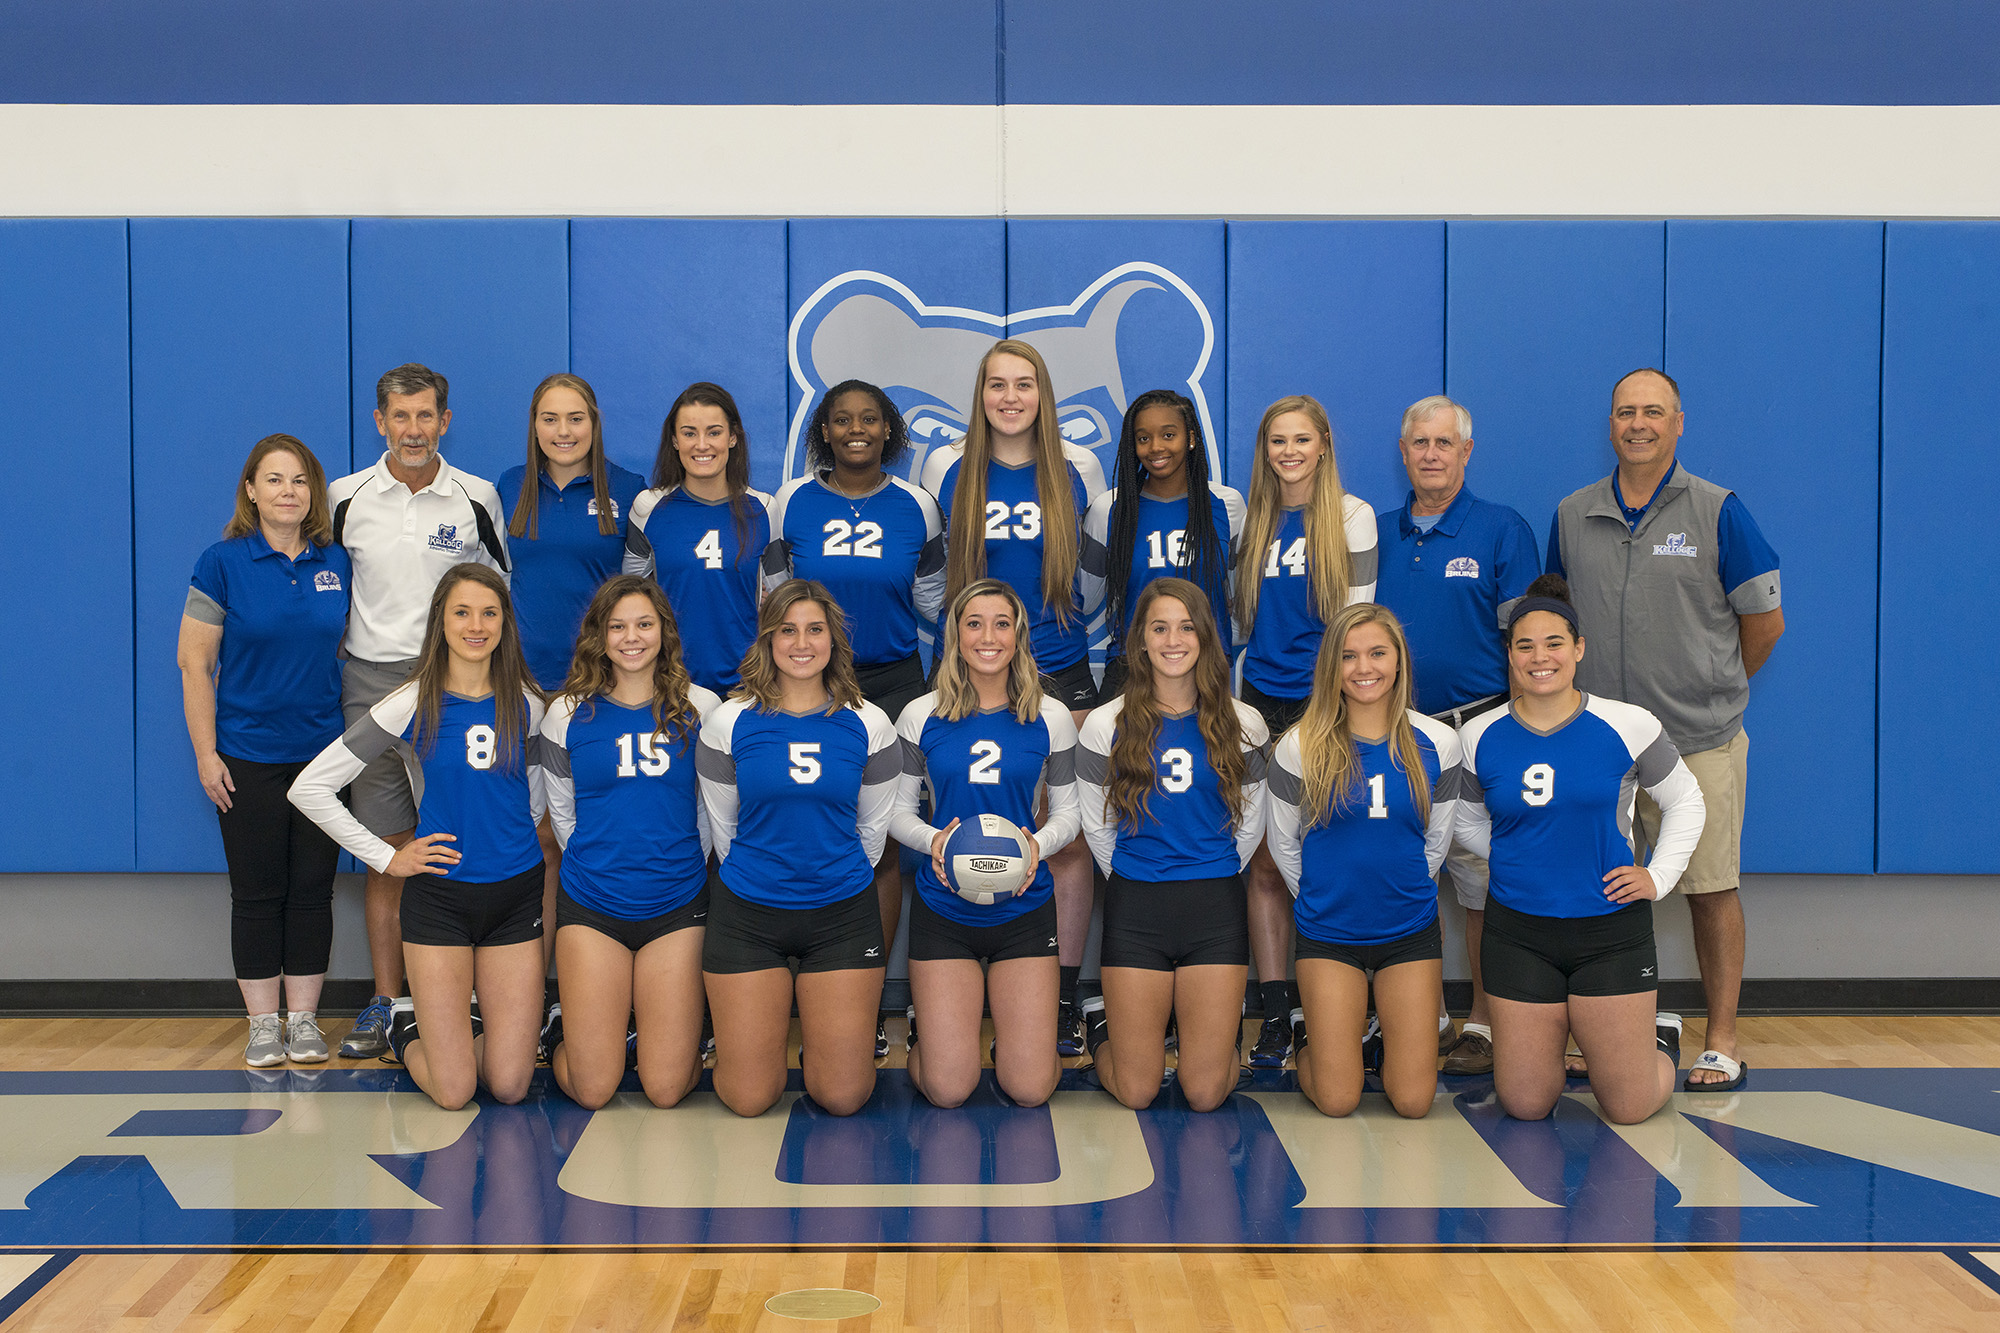 KCC's 2019 women's volleyball team.